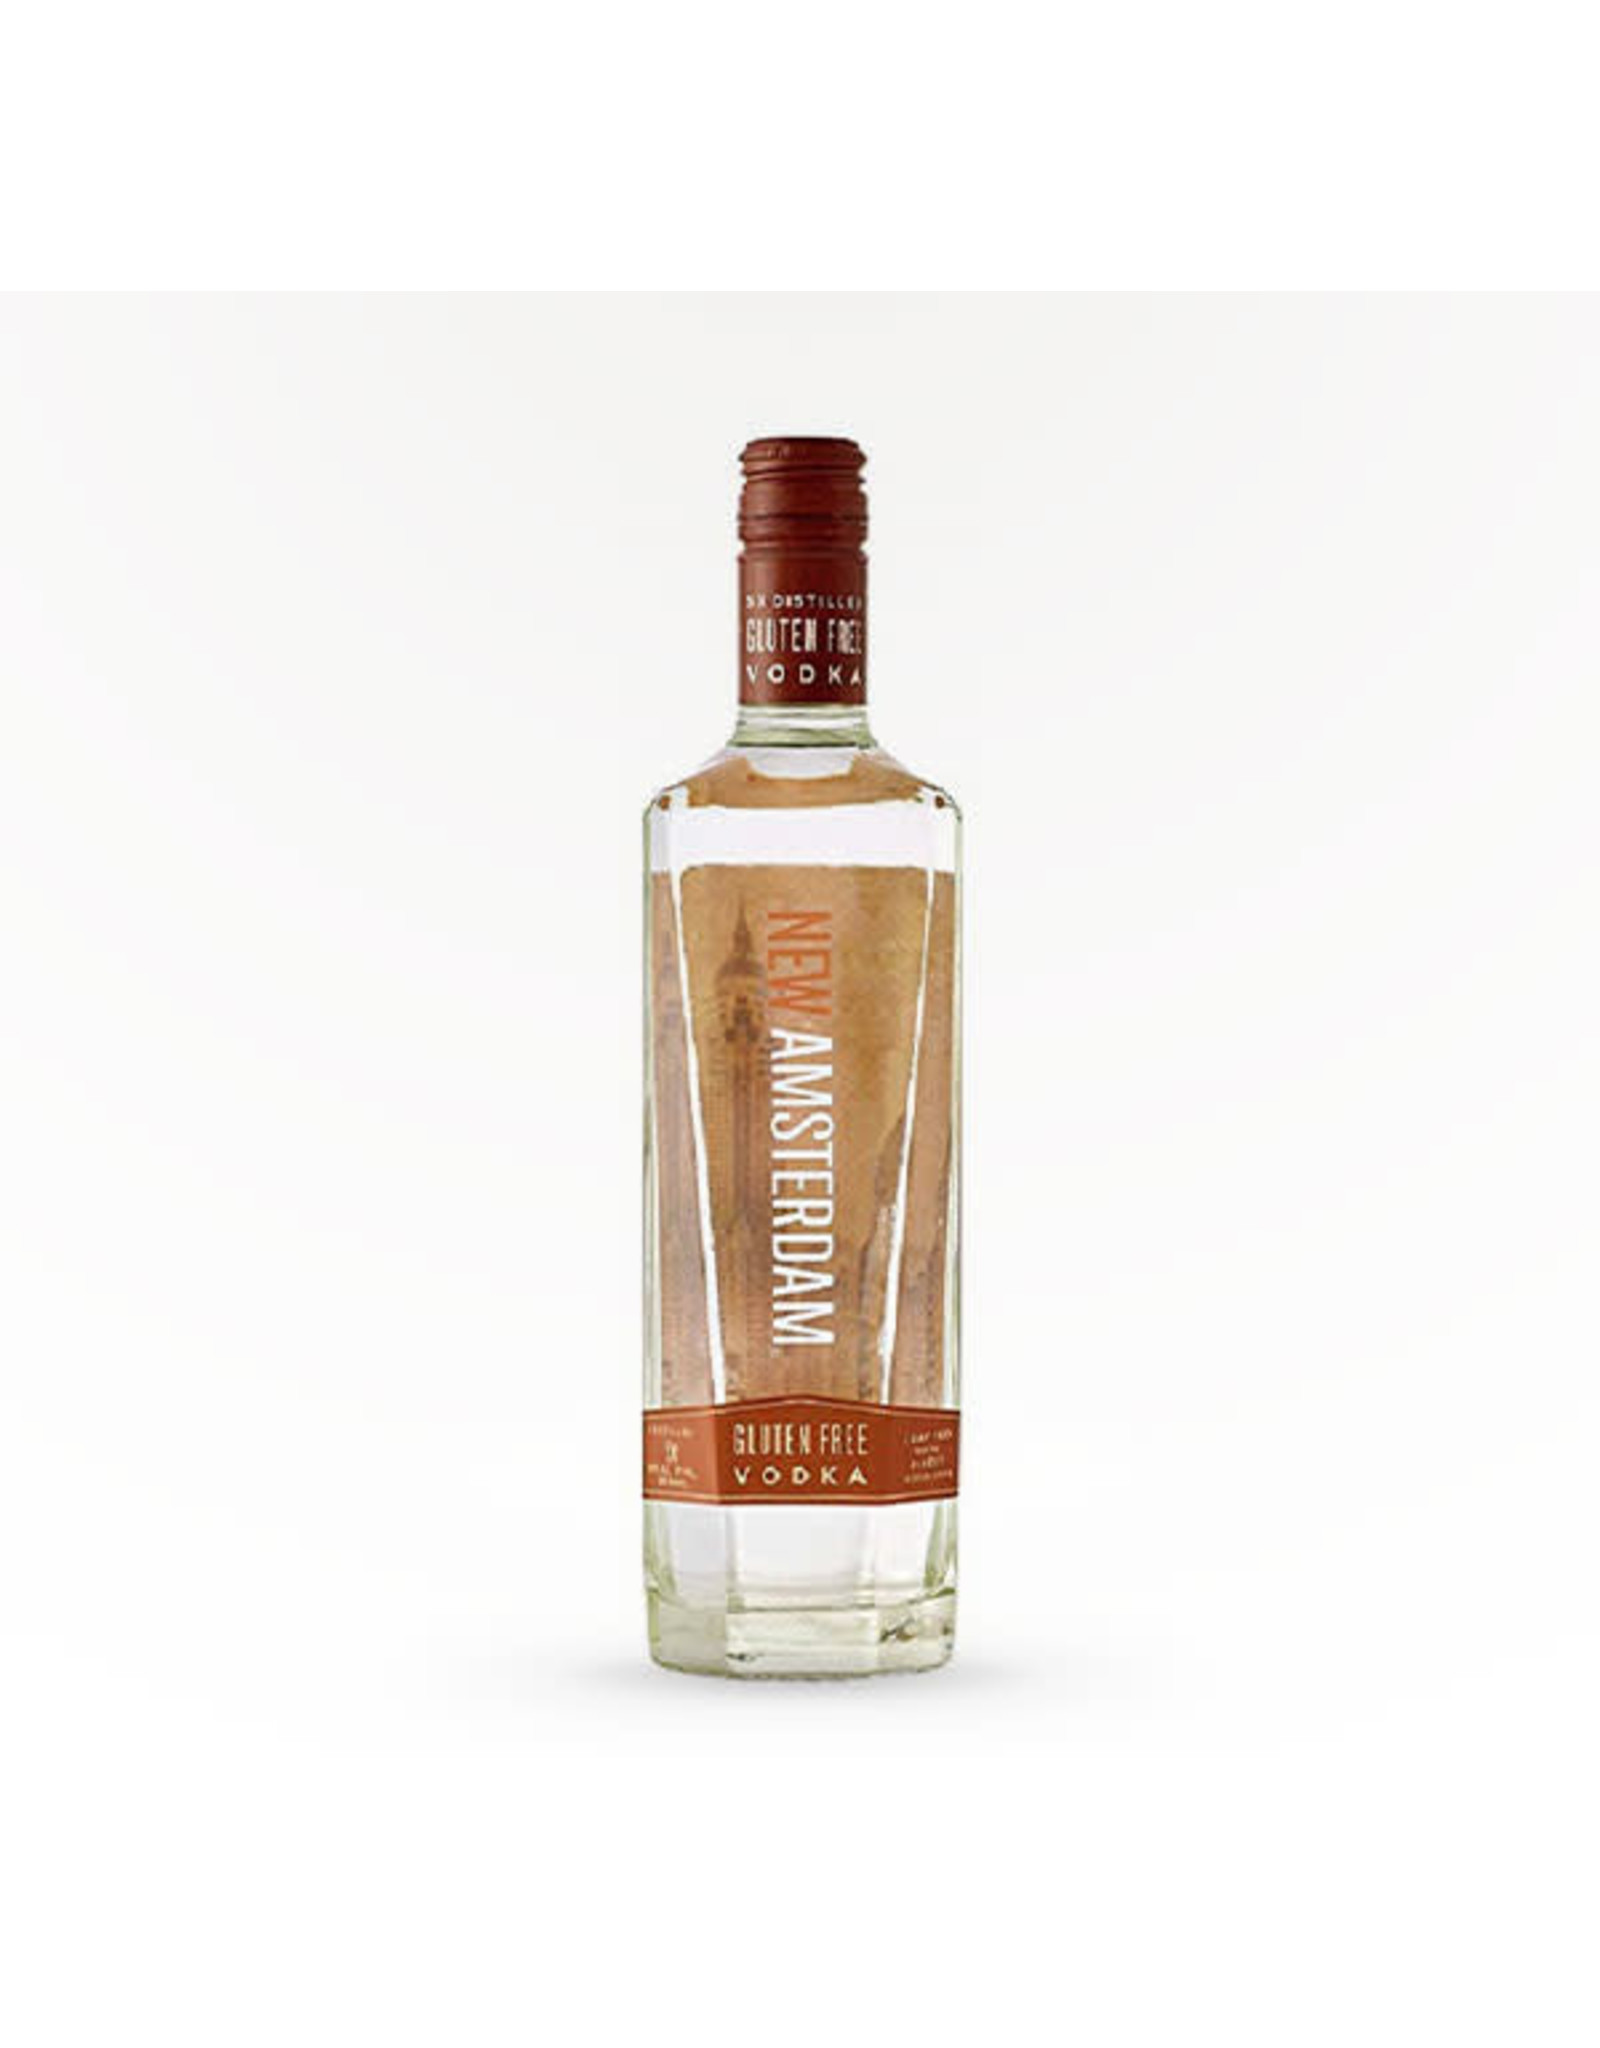 NEW AMSTERDAM GLUTEN FREE VODKA 750ML